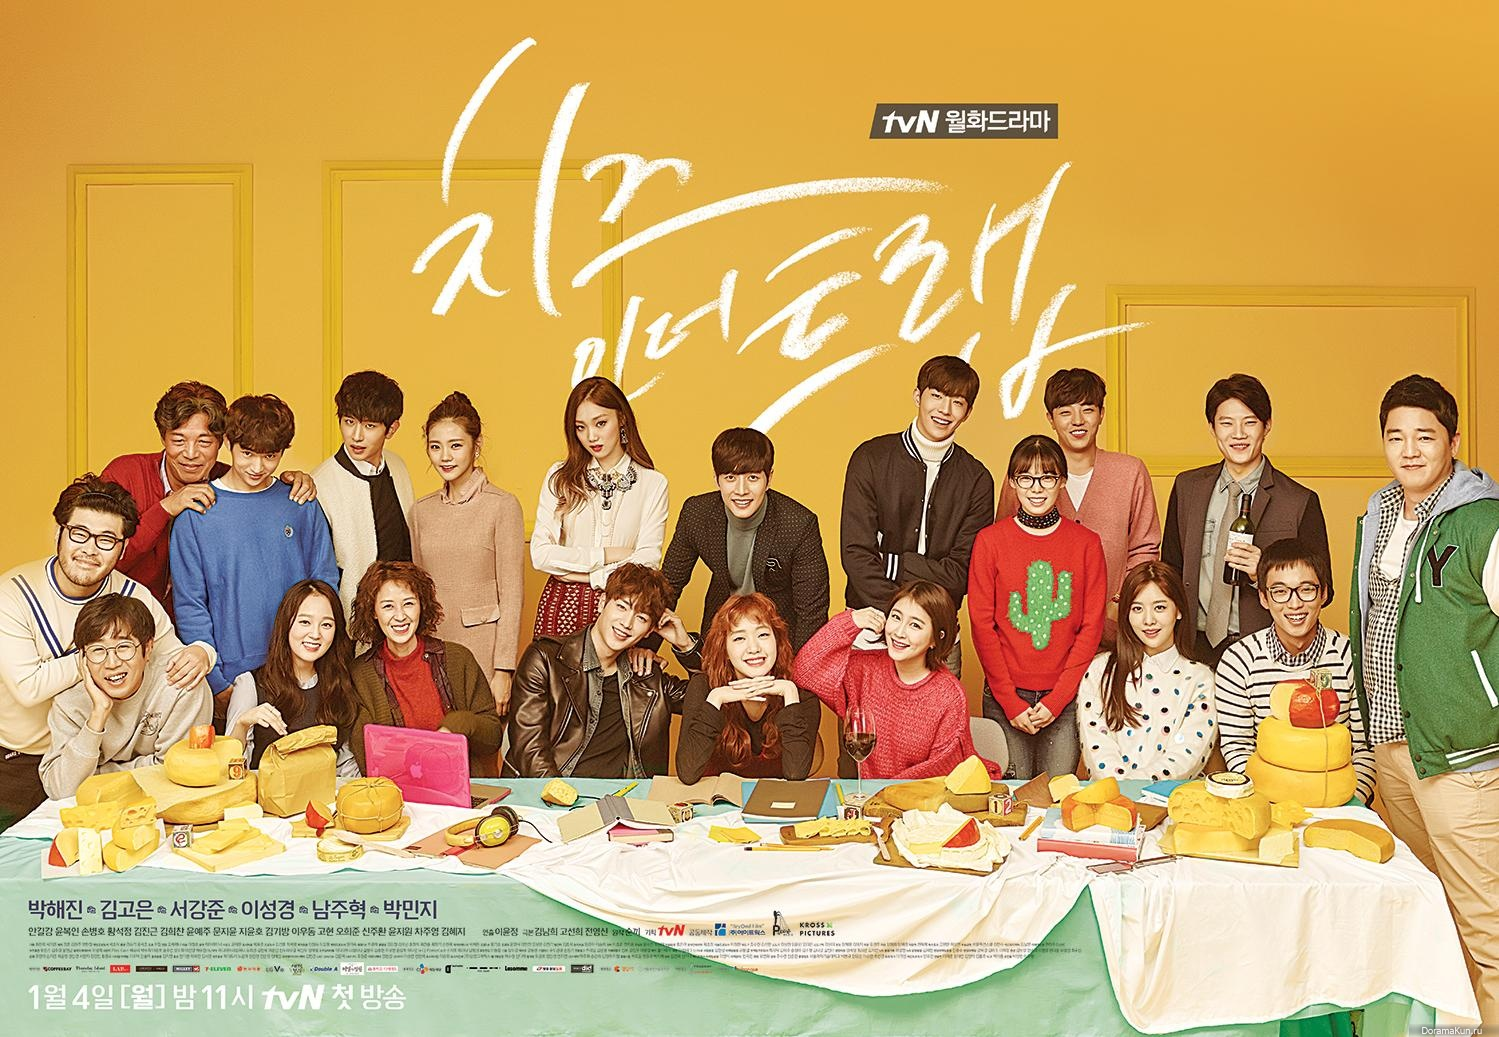 Сыр в мышеловке/Cheese in the trap (2016) - Страница 2 Cheese-in-the-Trap-Poster3-1499